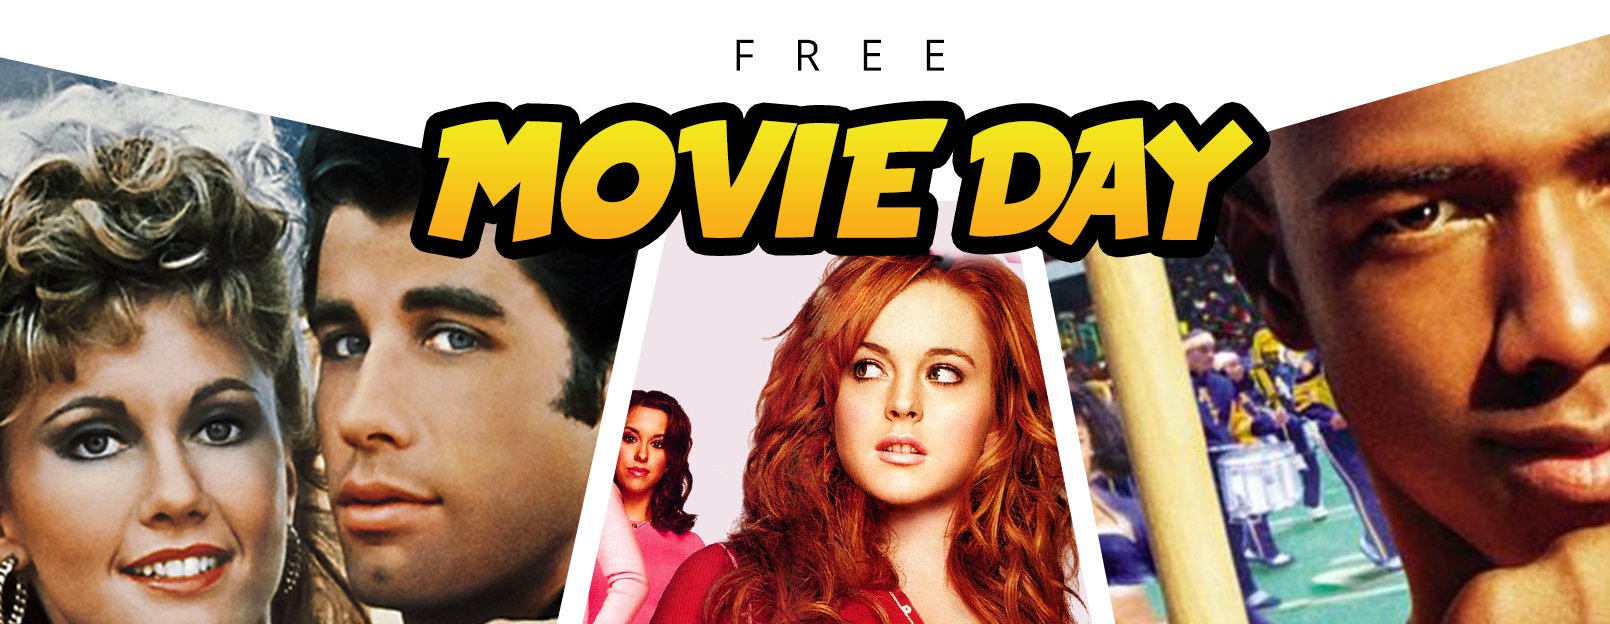 CANCELLED: Free Movie Day